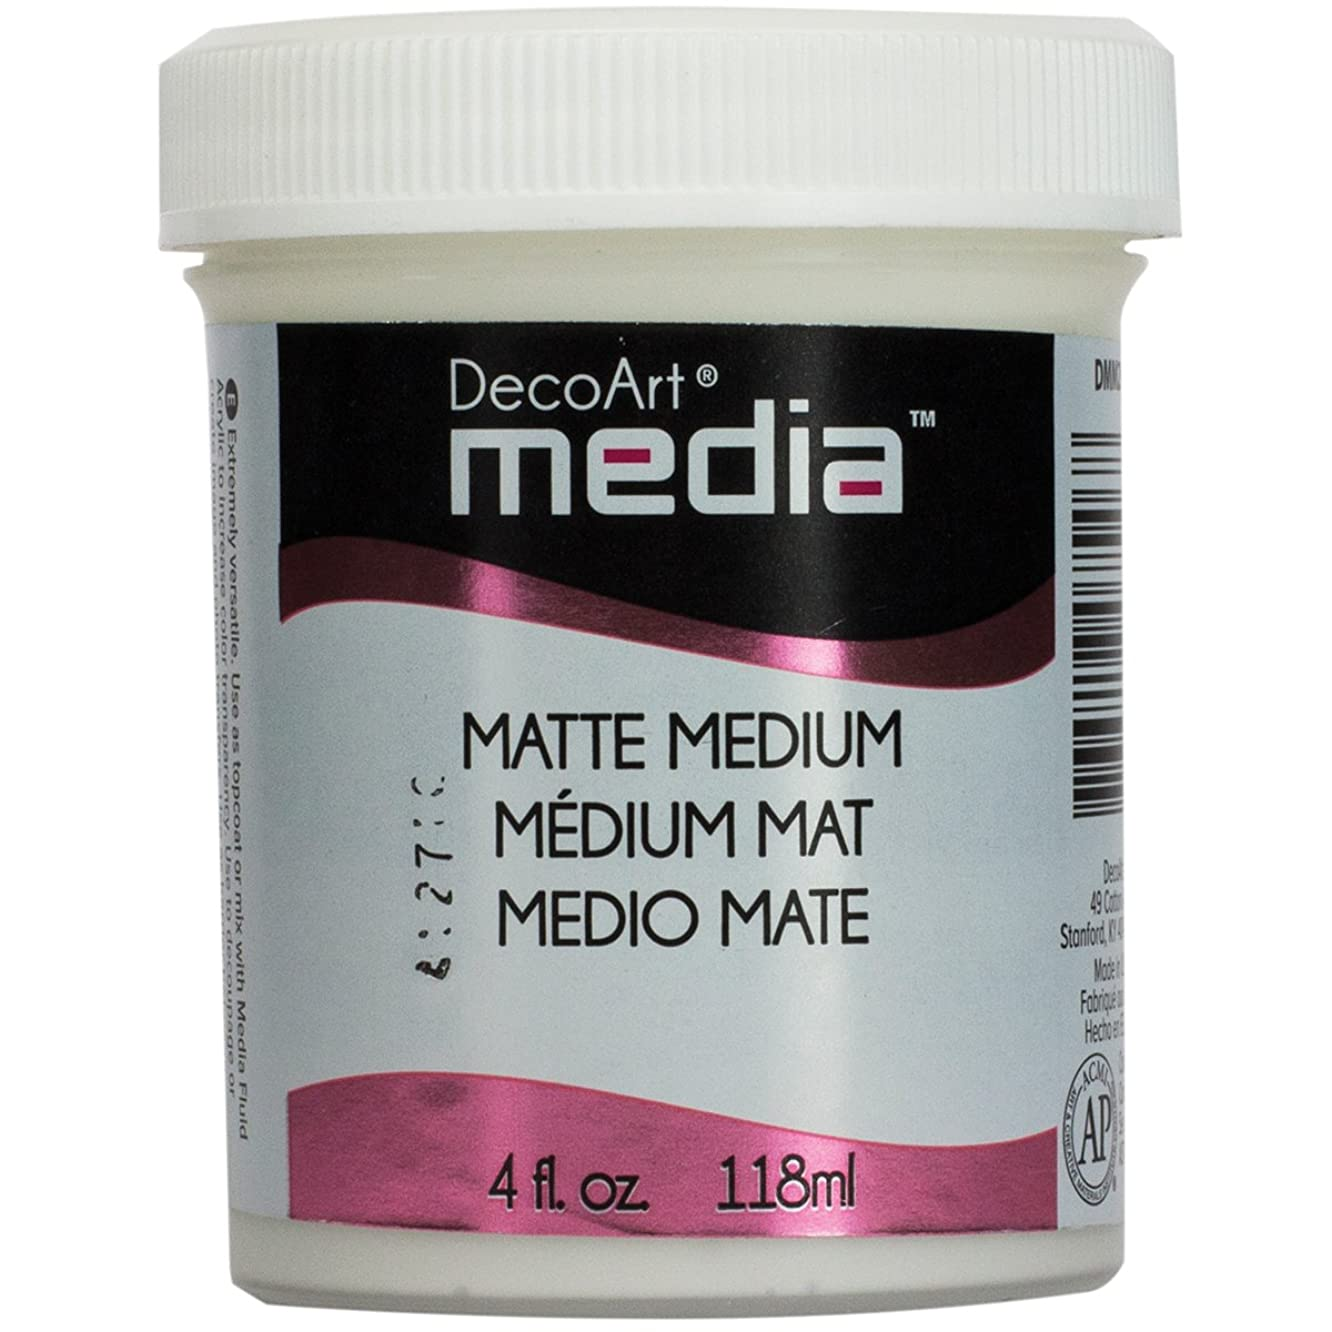 Deco Art Media Medium Matte, 4 oz